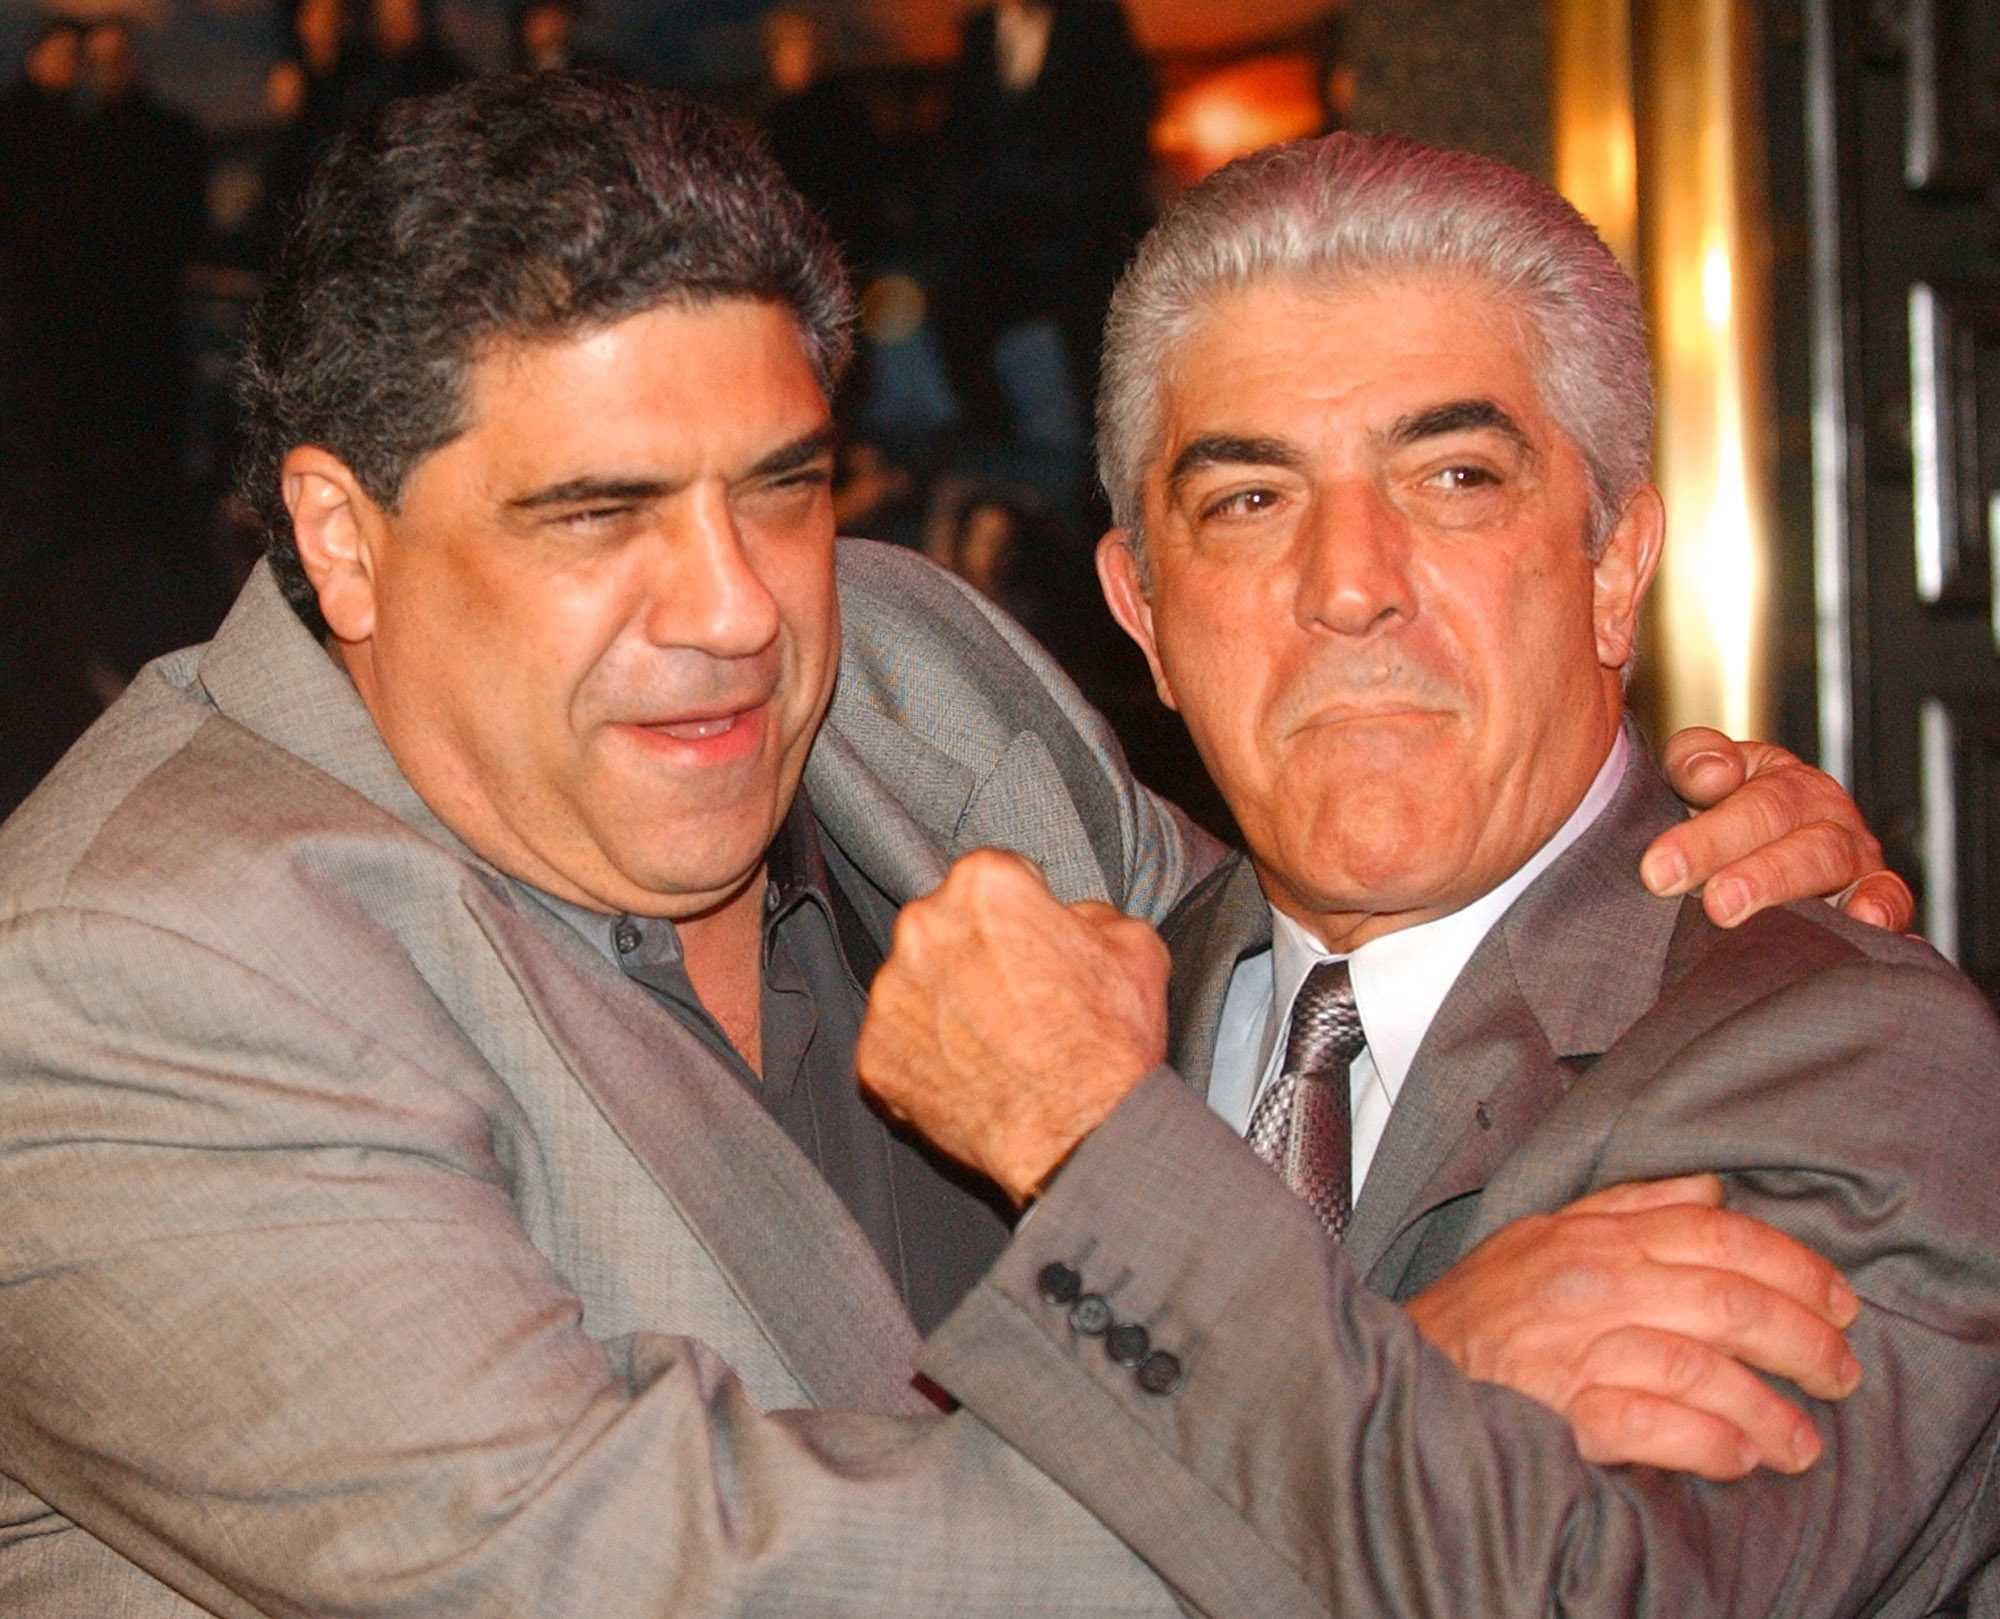 'Sopranos' Actor Frank Vincent Dead at Age 78